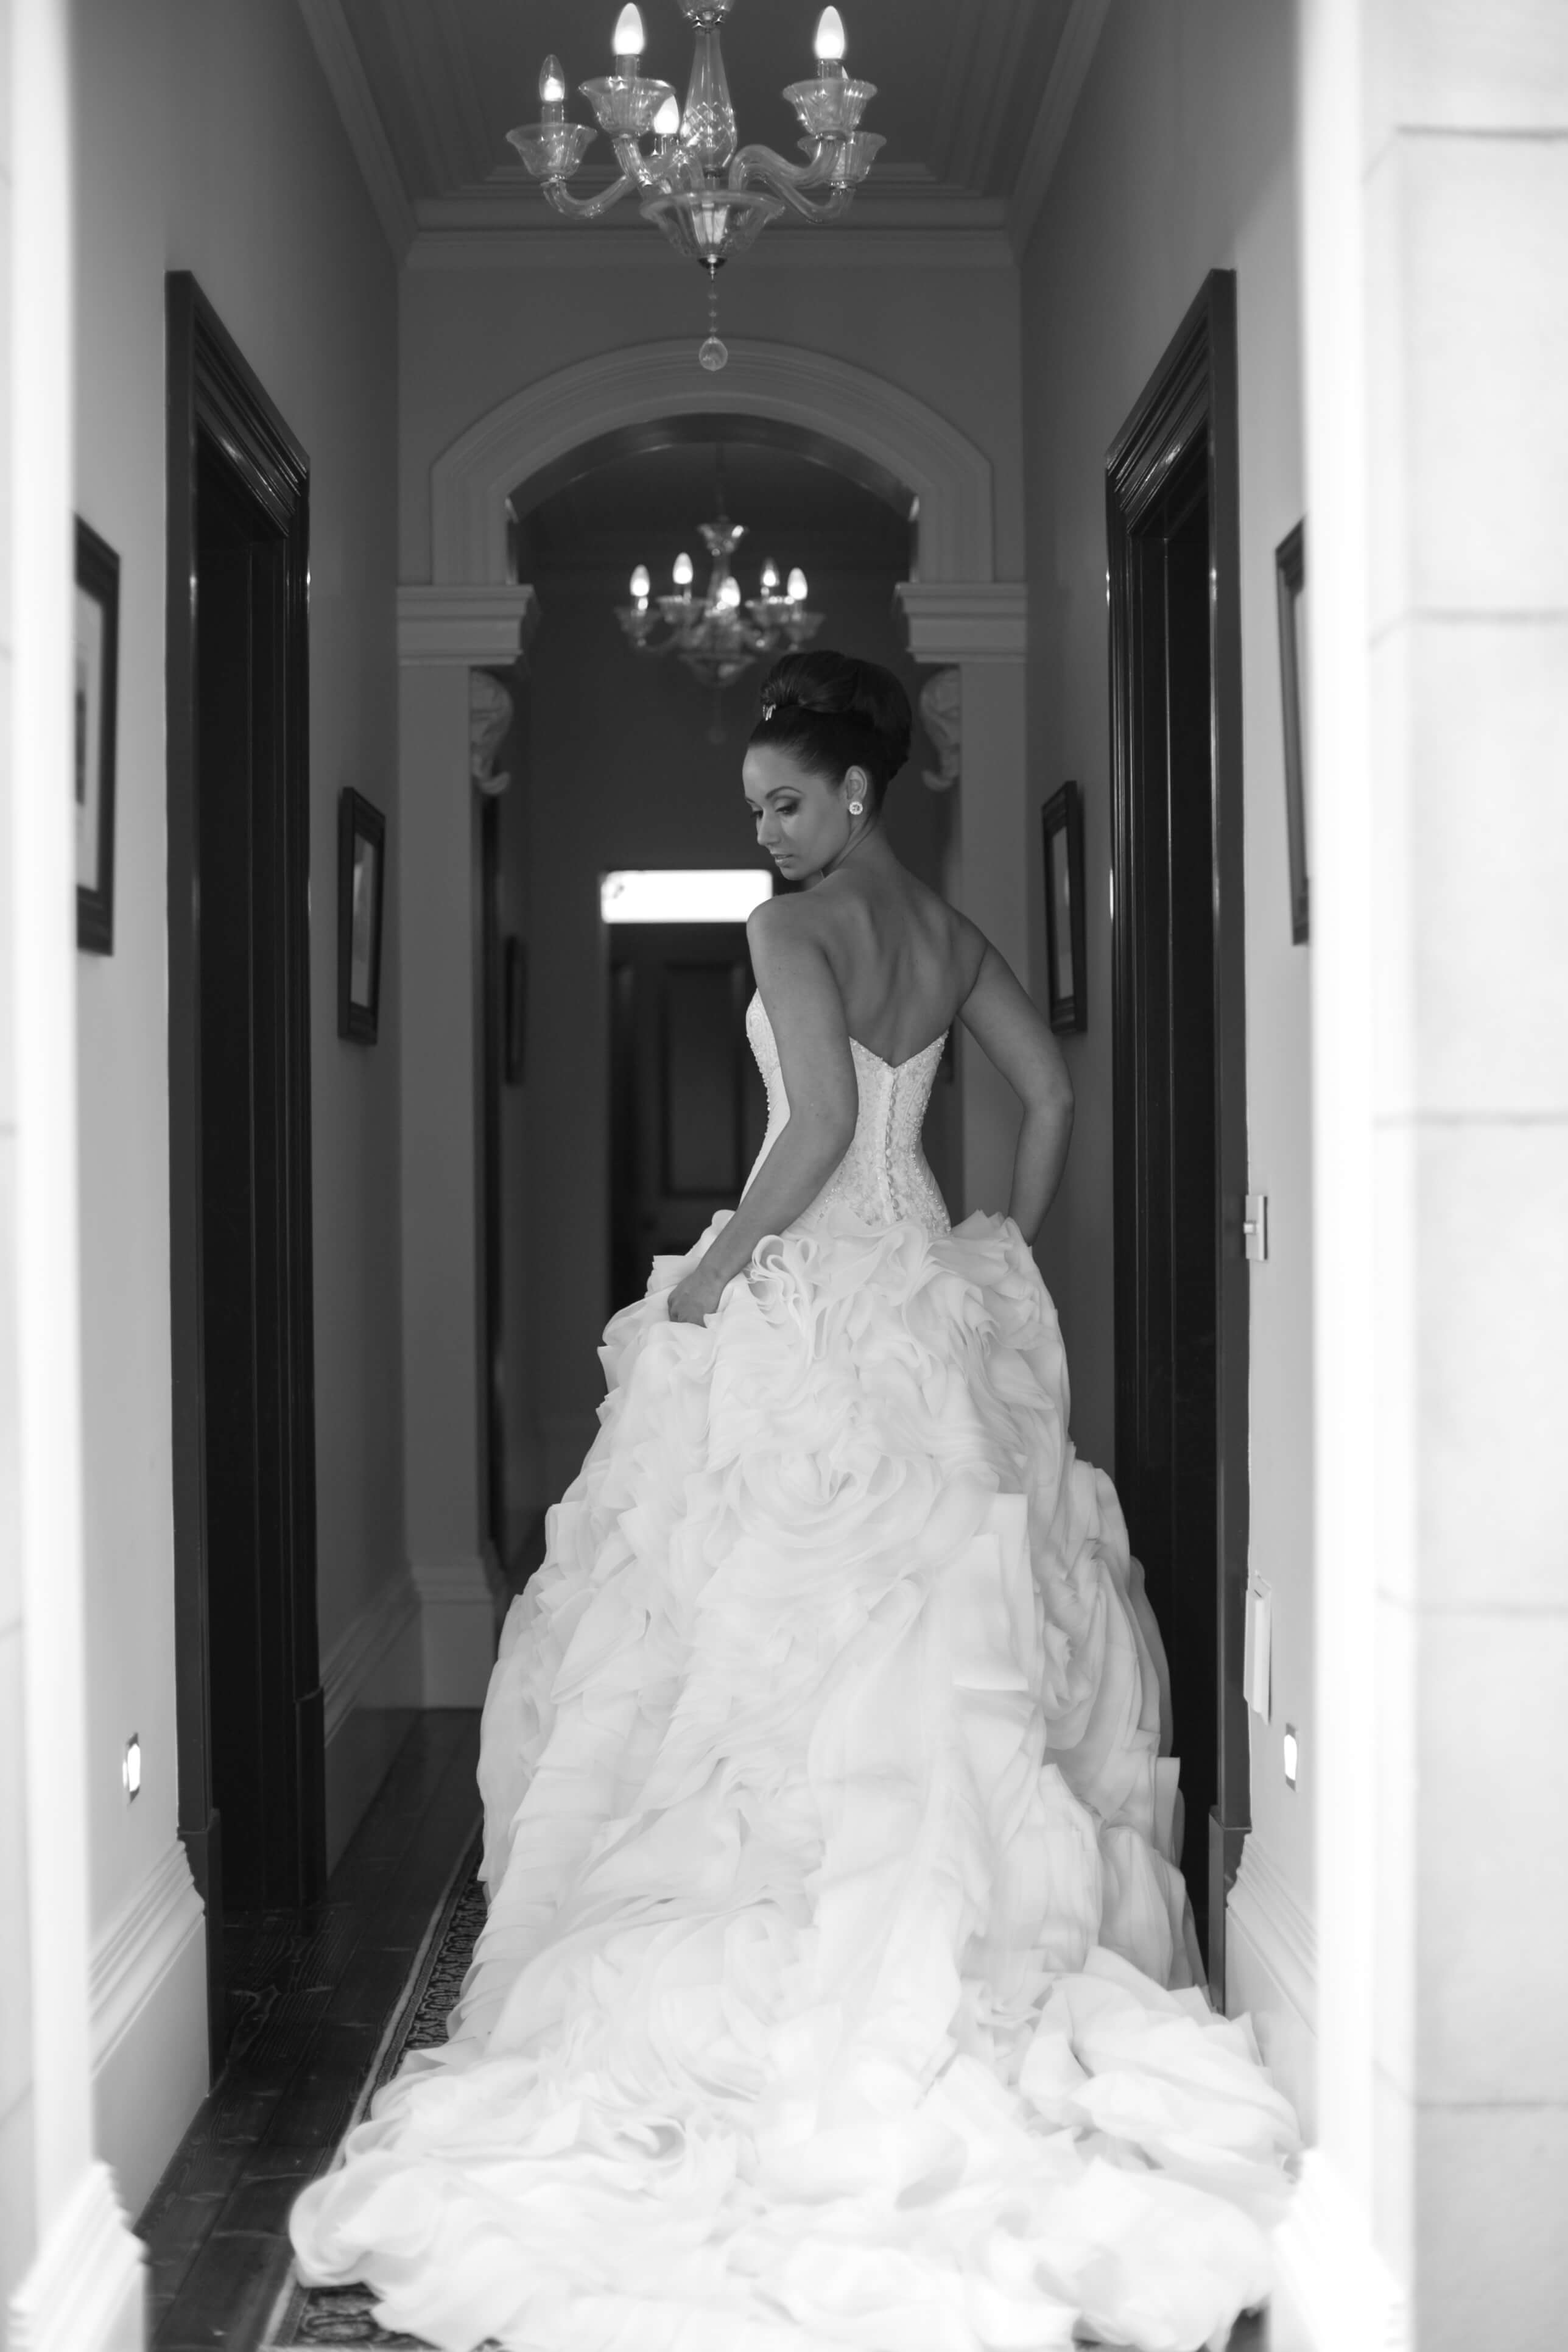 Bespoke / Other – Size 8 Ball Gown dress | Second hand wedding dresses rowville - Size 8